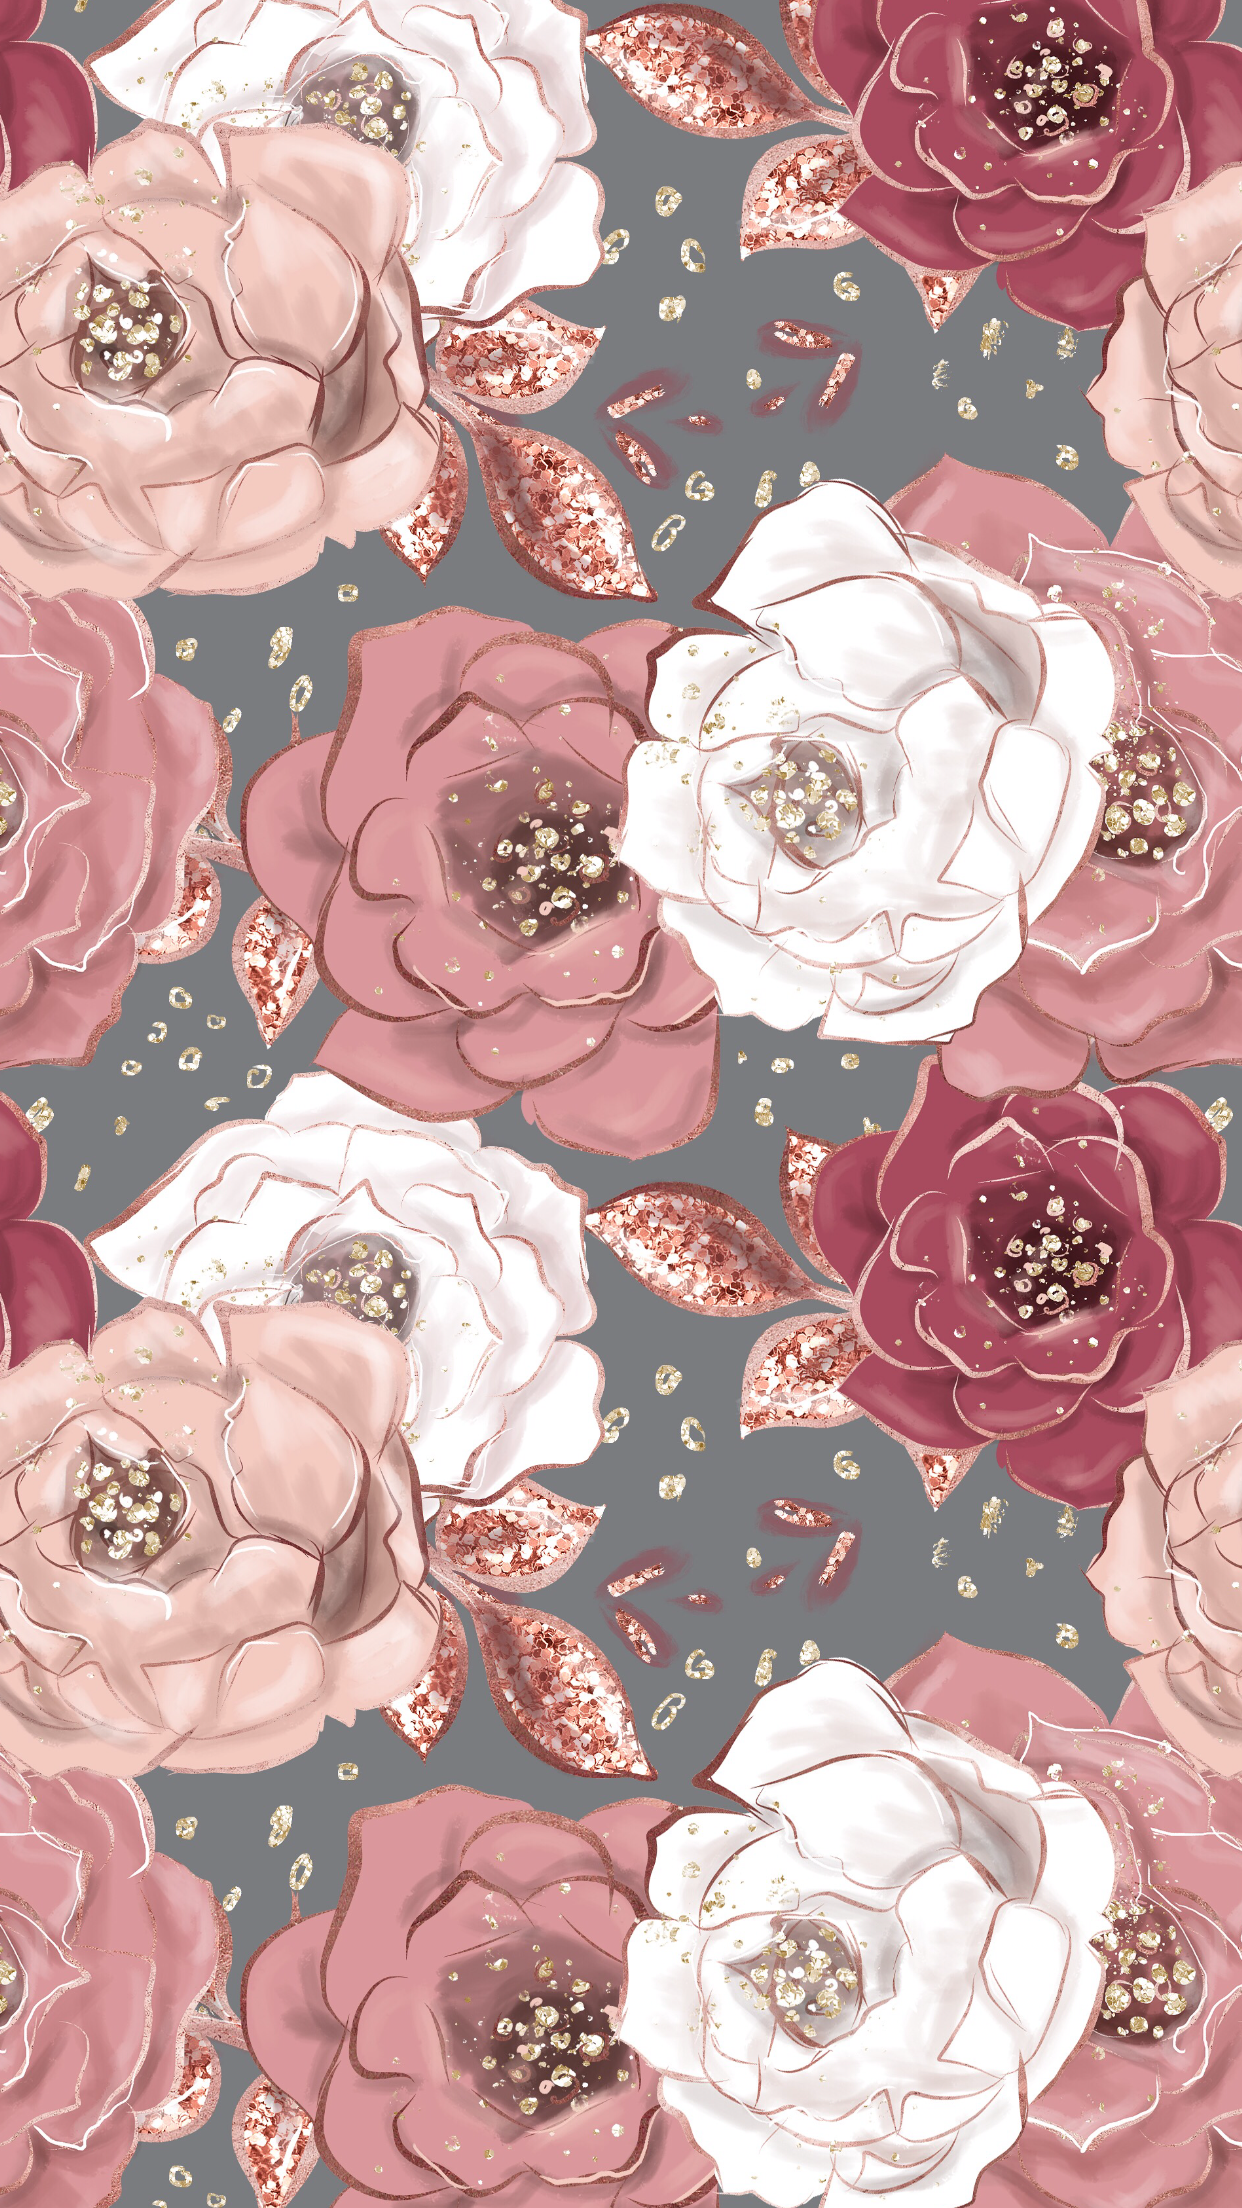 Rose Gold Cute Backgrounds 1242x2208 Wallpaper Teahub Io